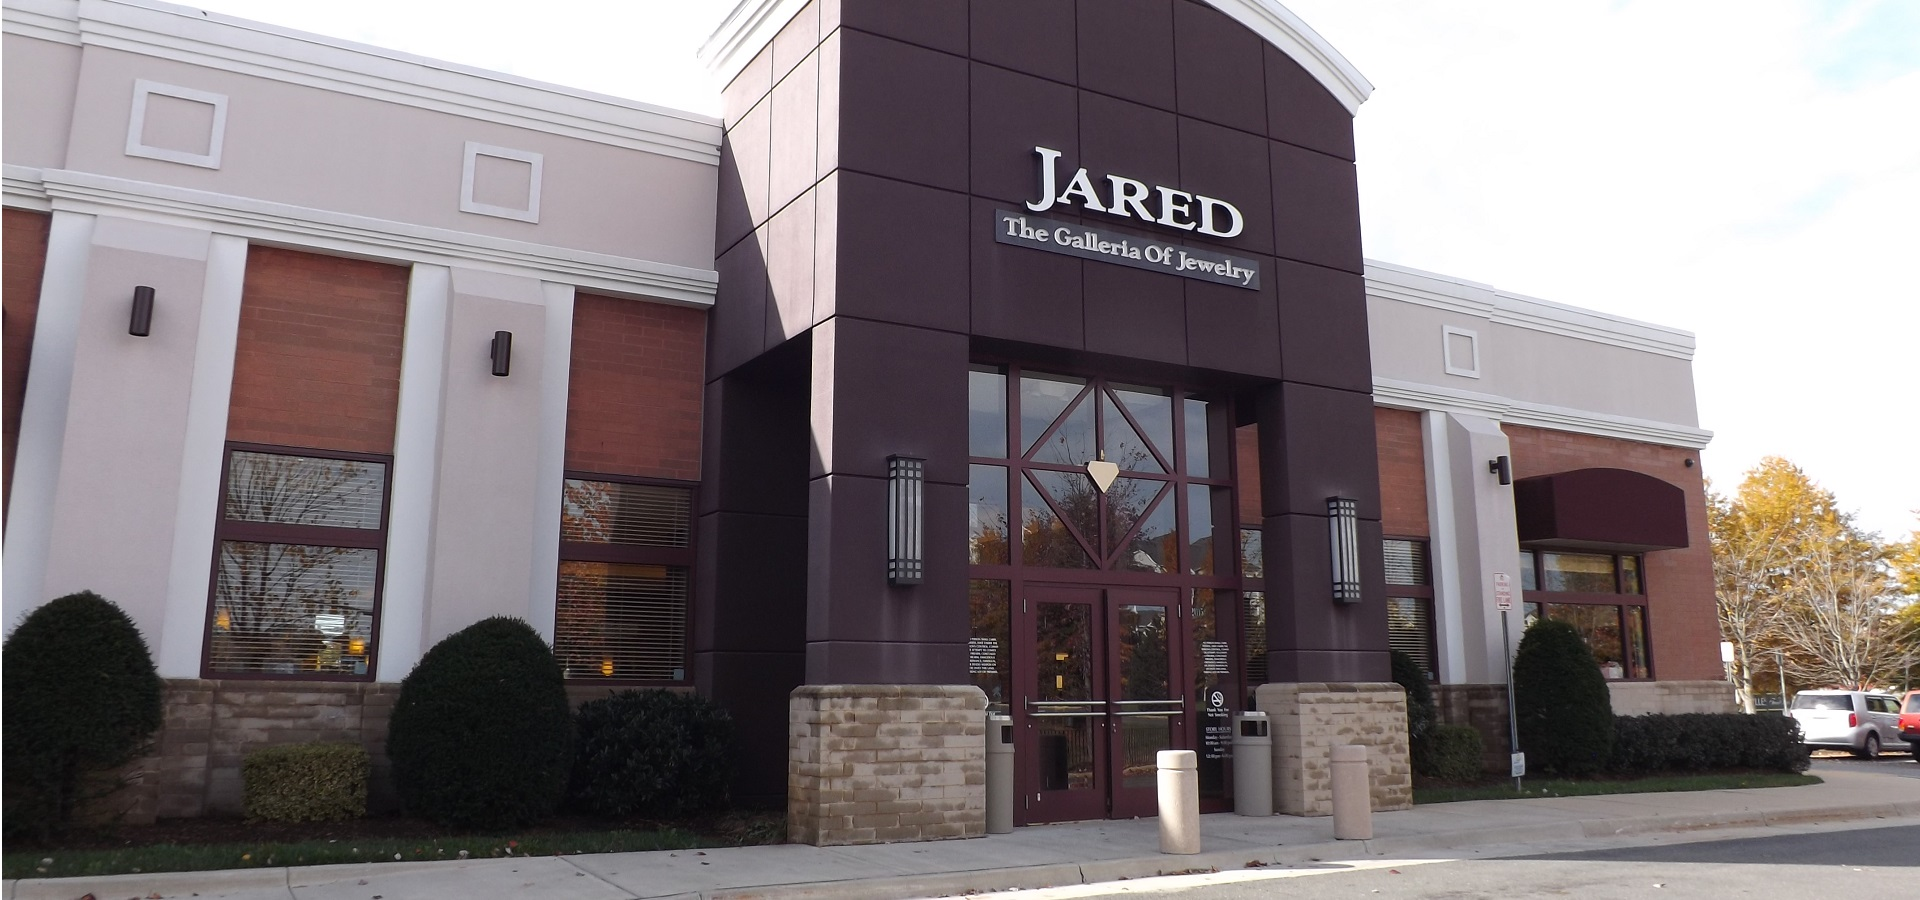 Jared the galleria of jewelry in dulles va dulles town for Jared jewelry store website